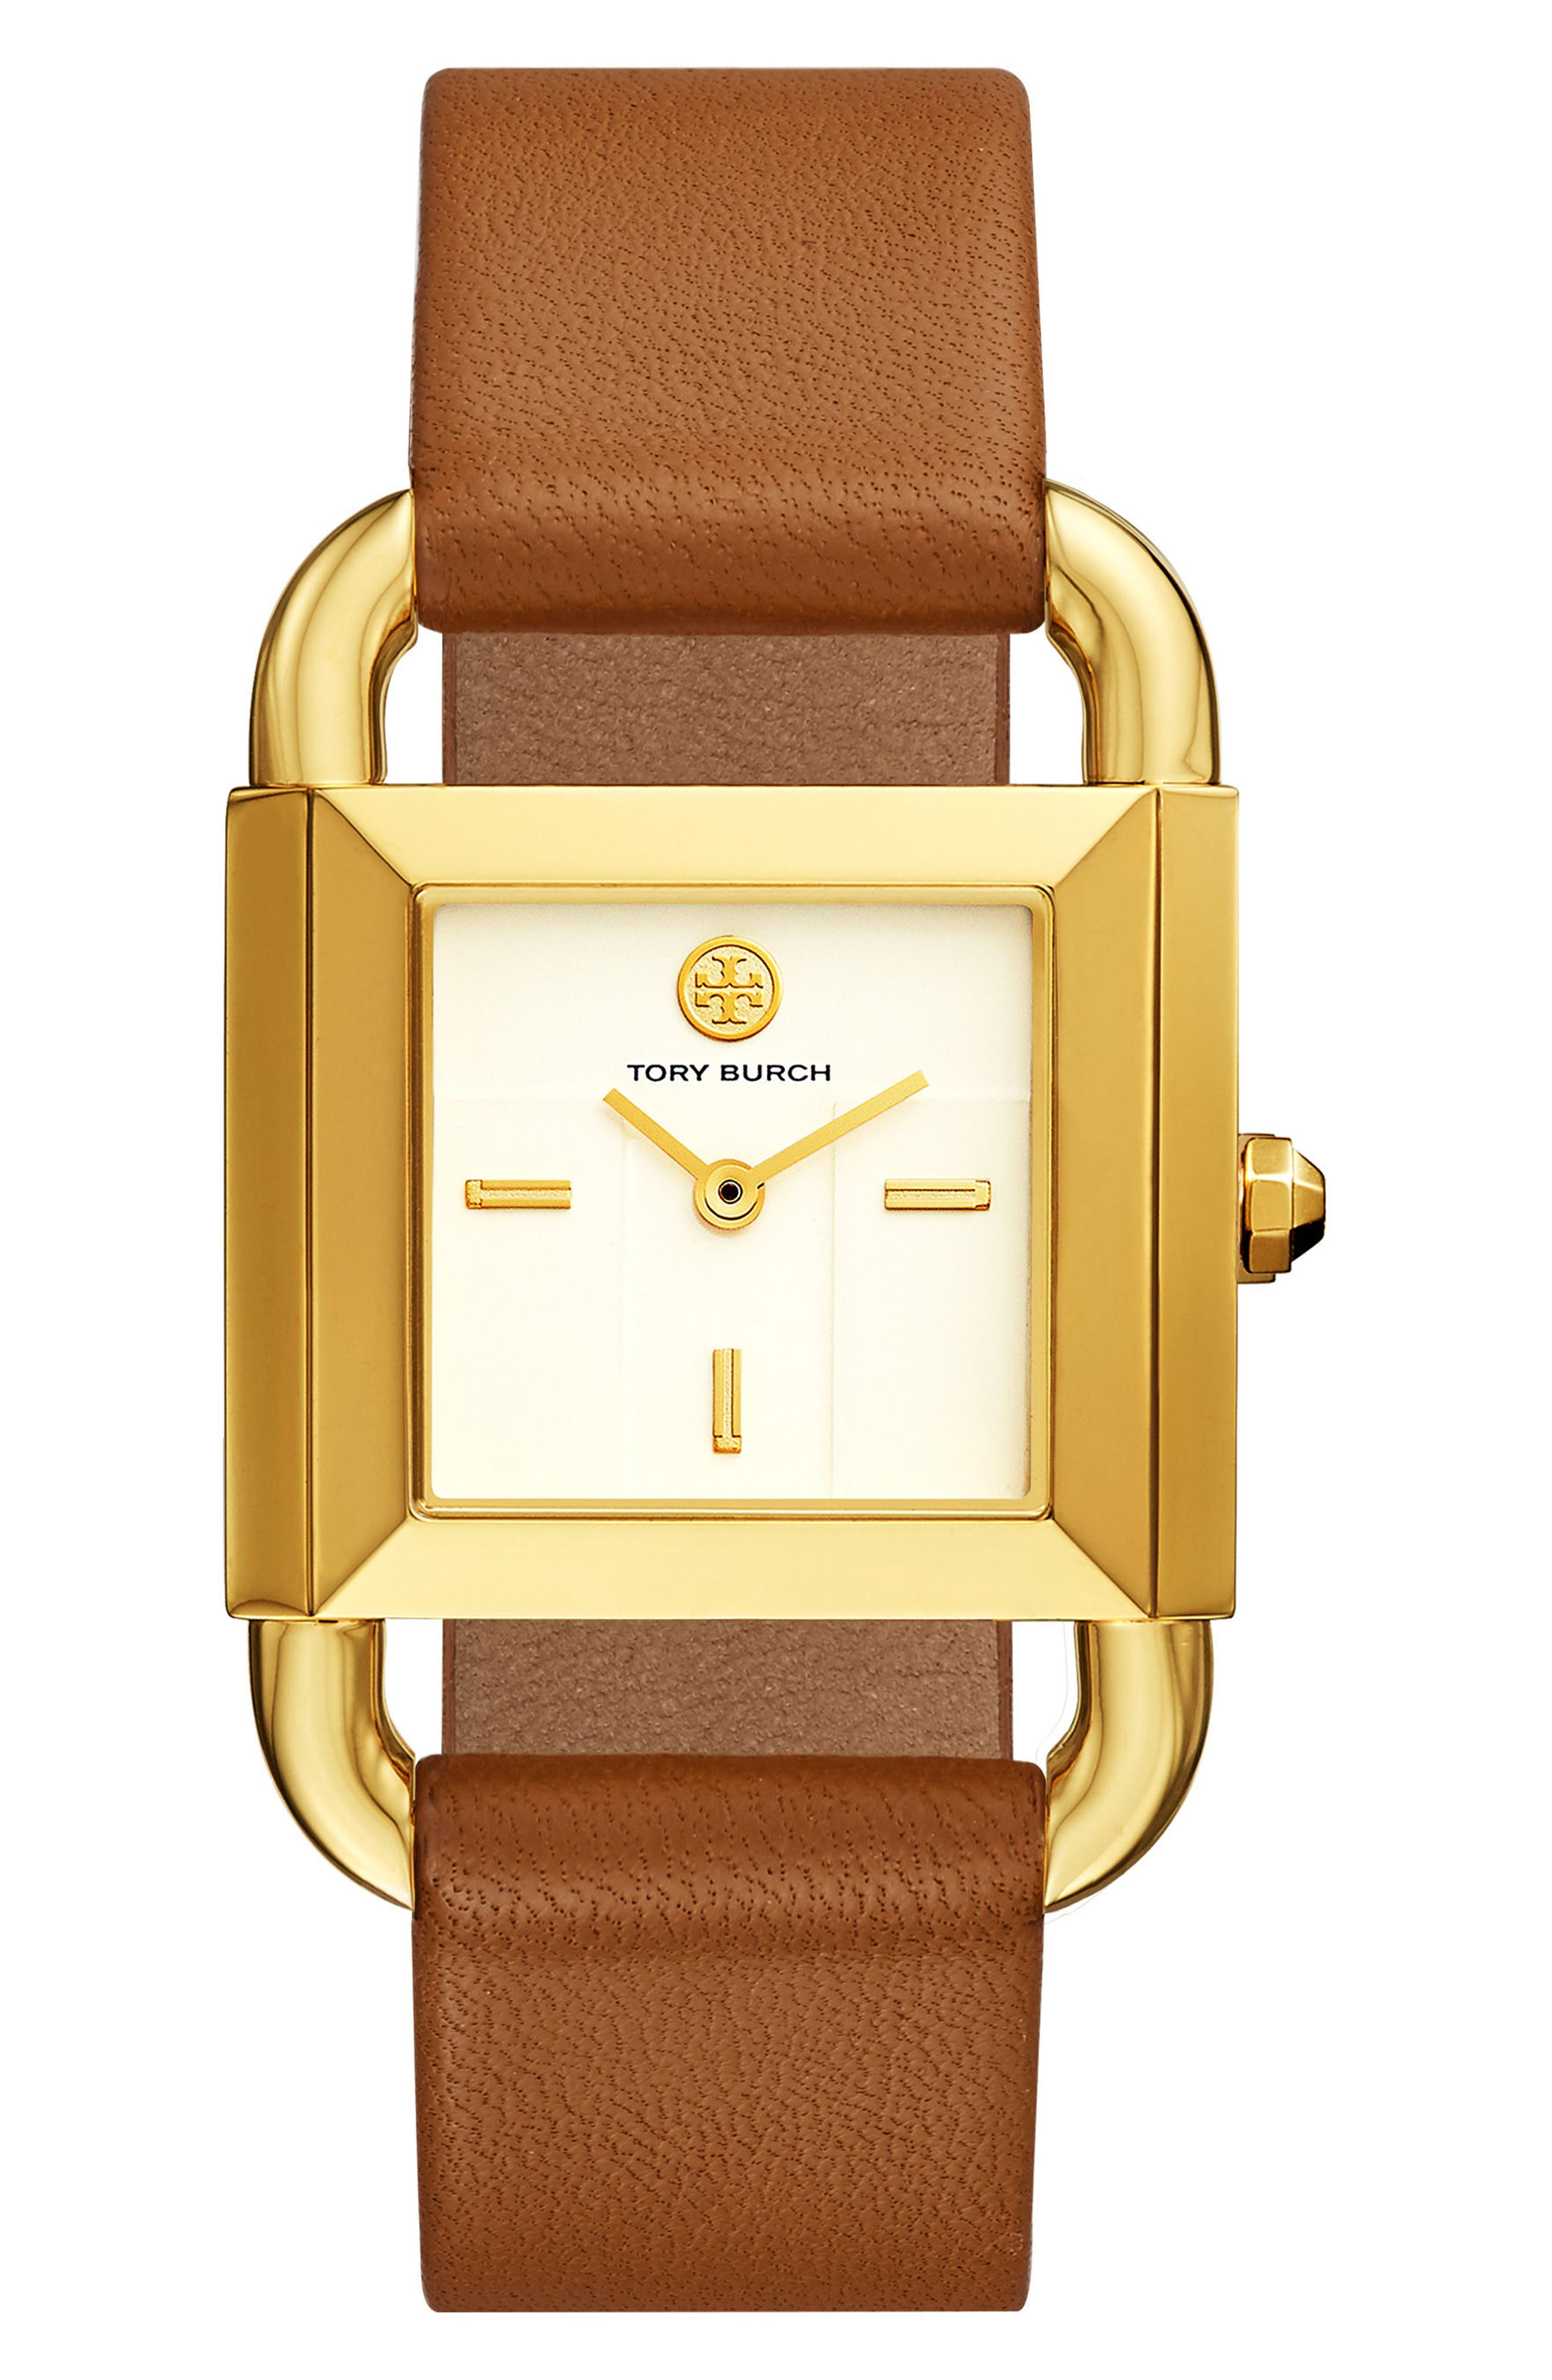 Main Image - Tory Burch Phipps Leather Strap Watch, 29mm x 41mm